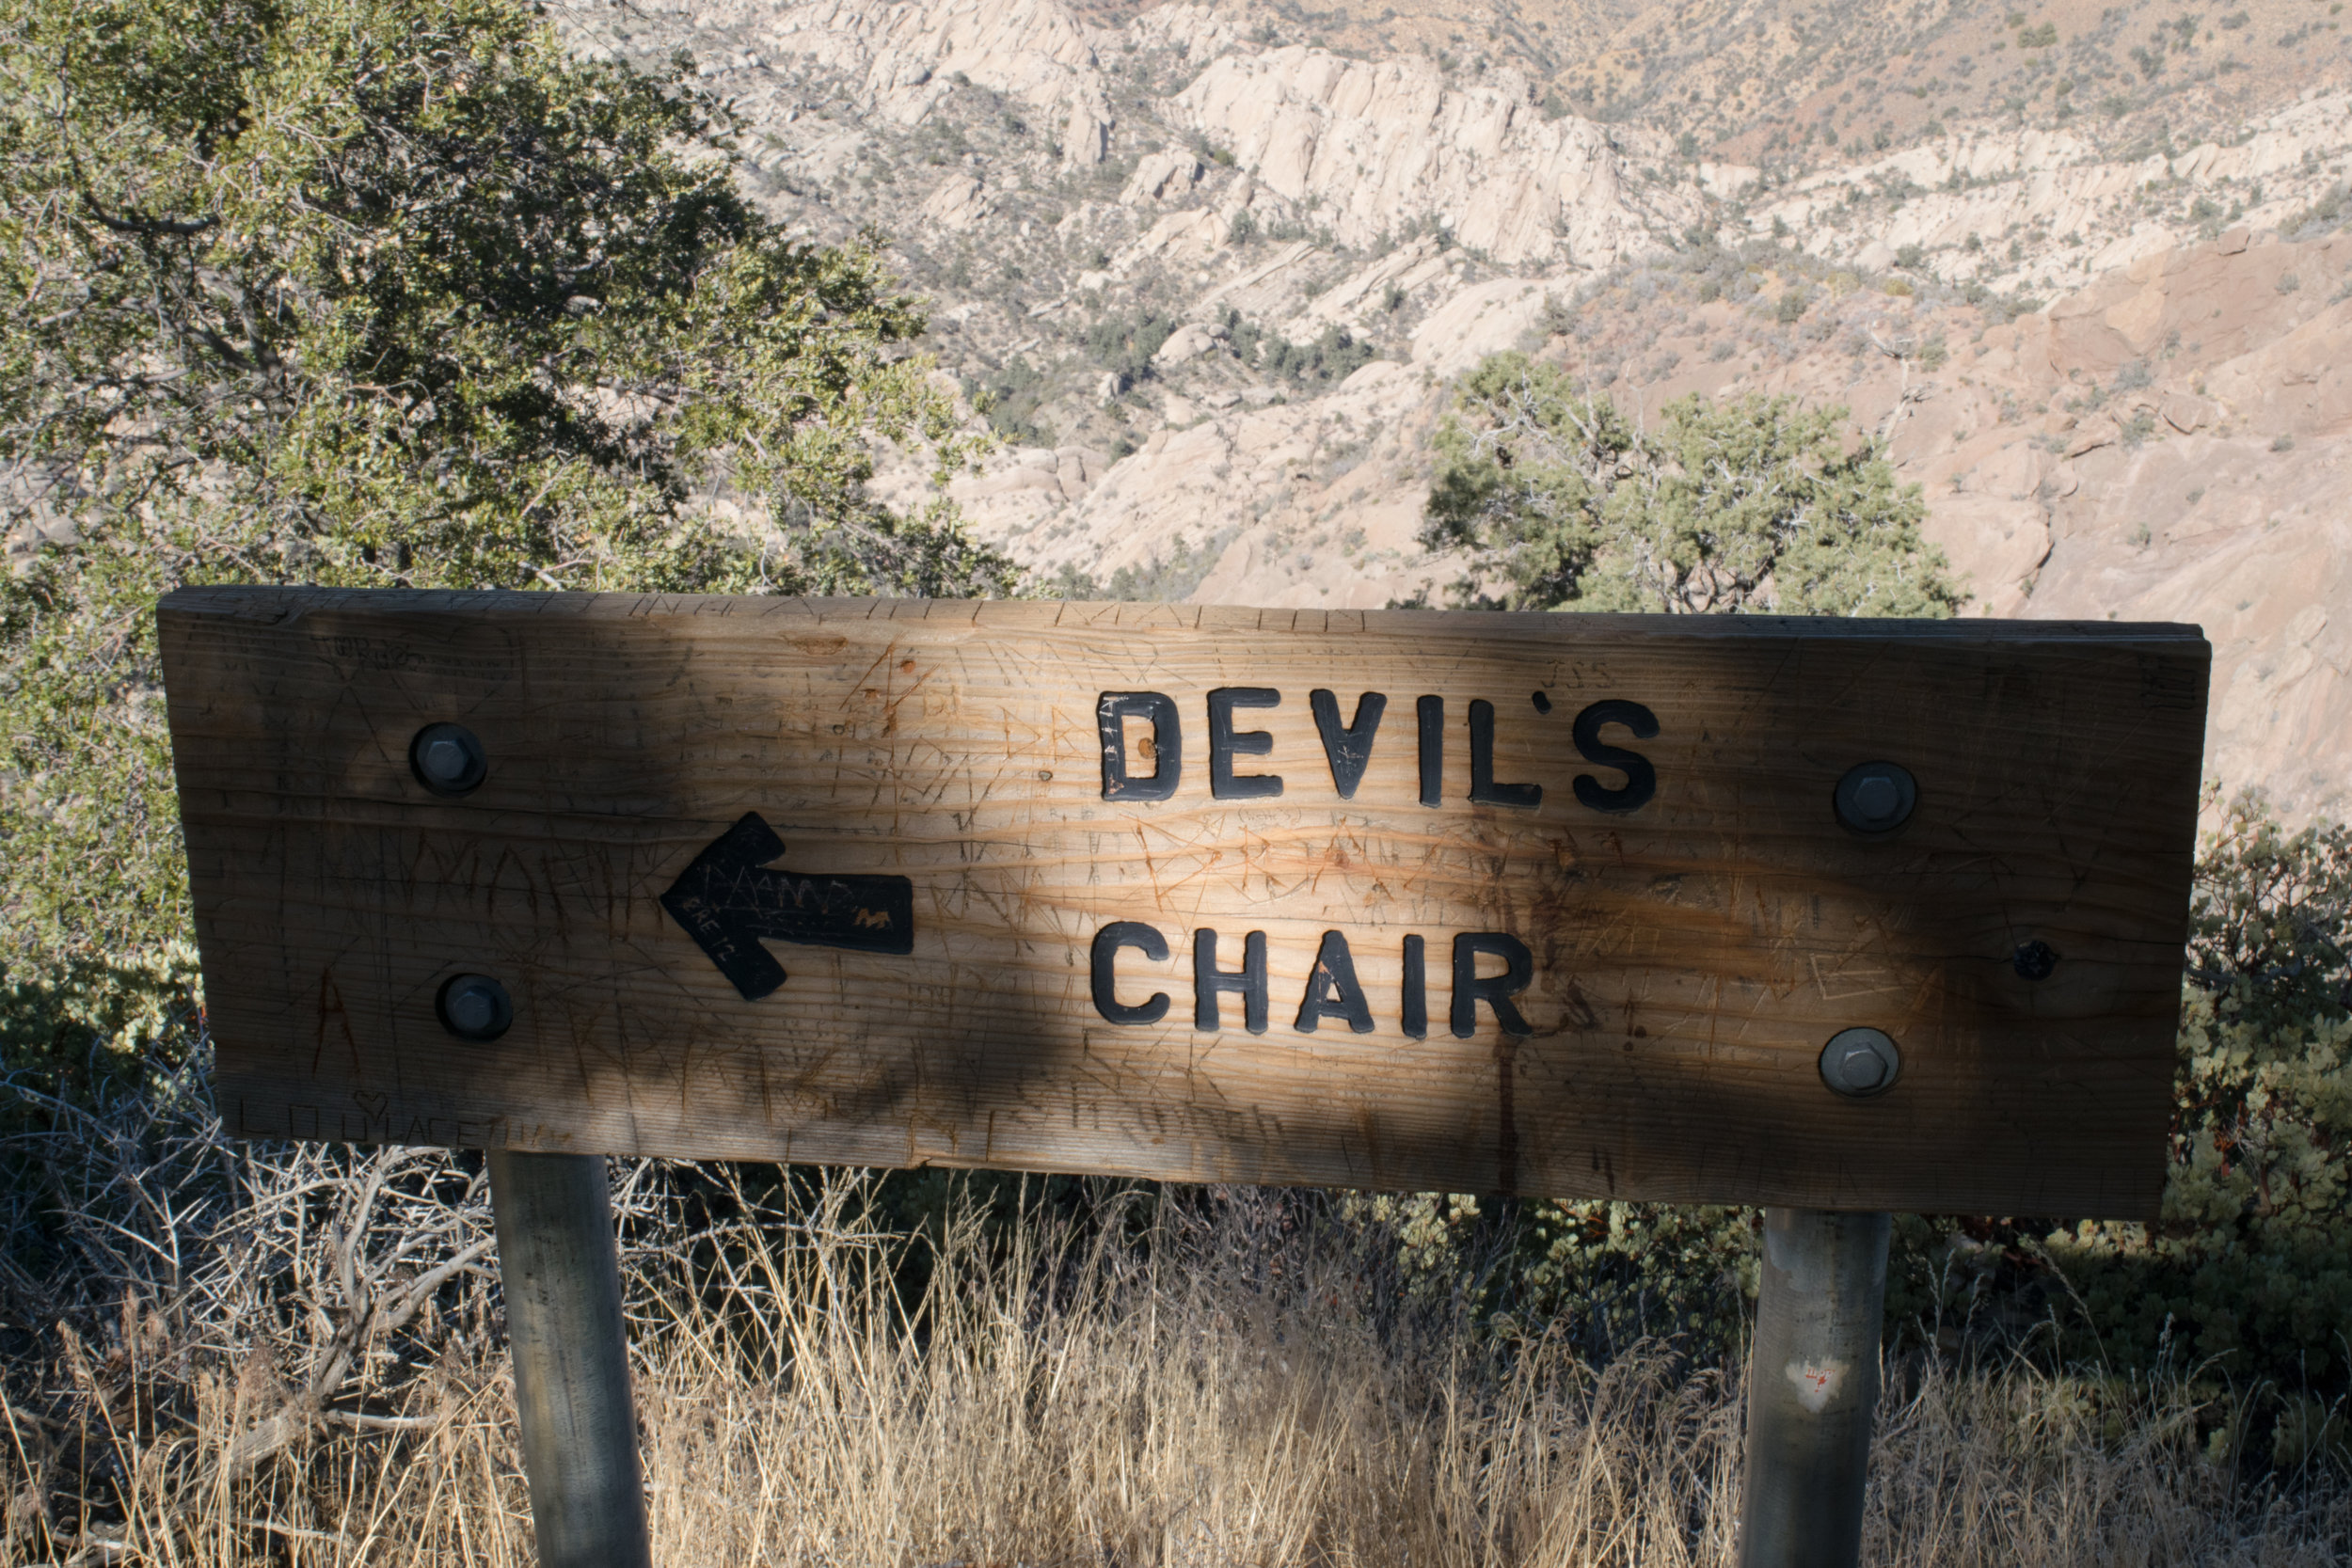 Devils chair sign